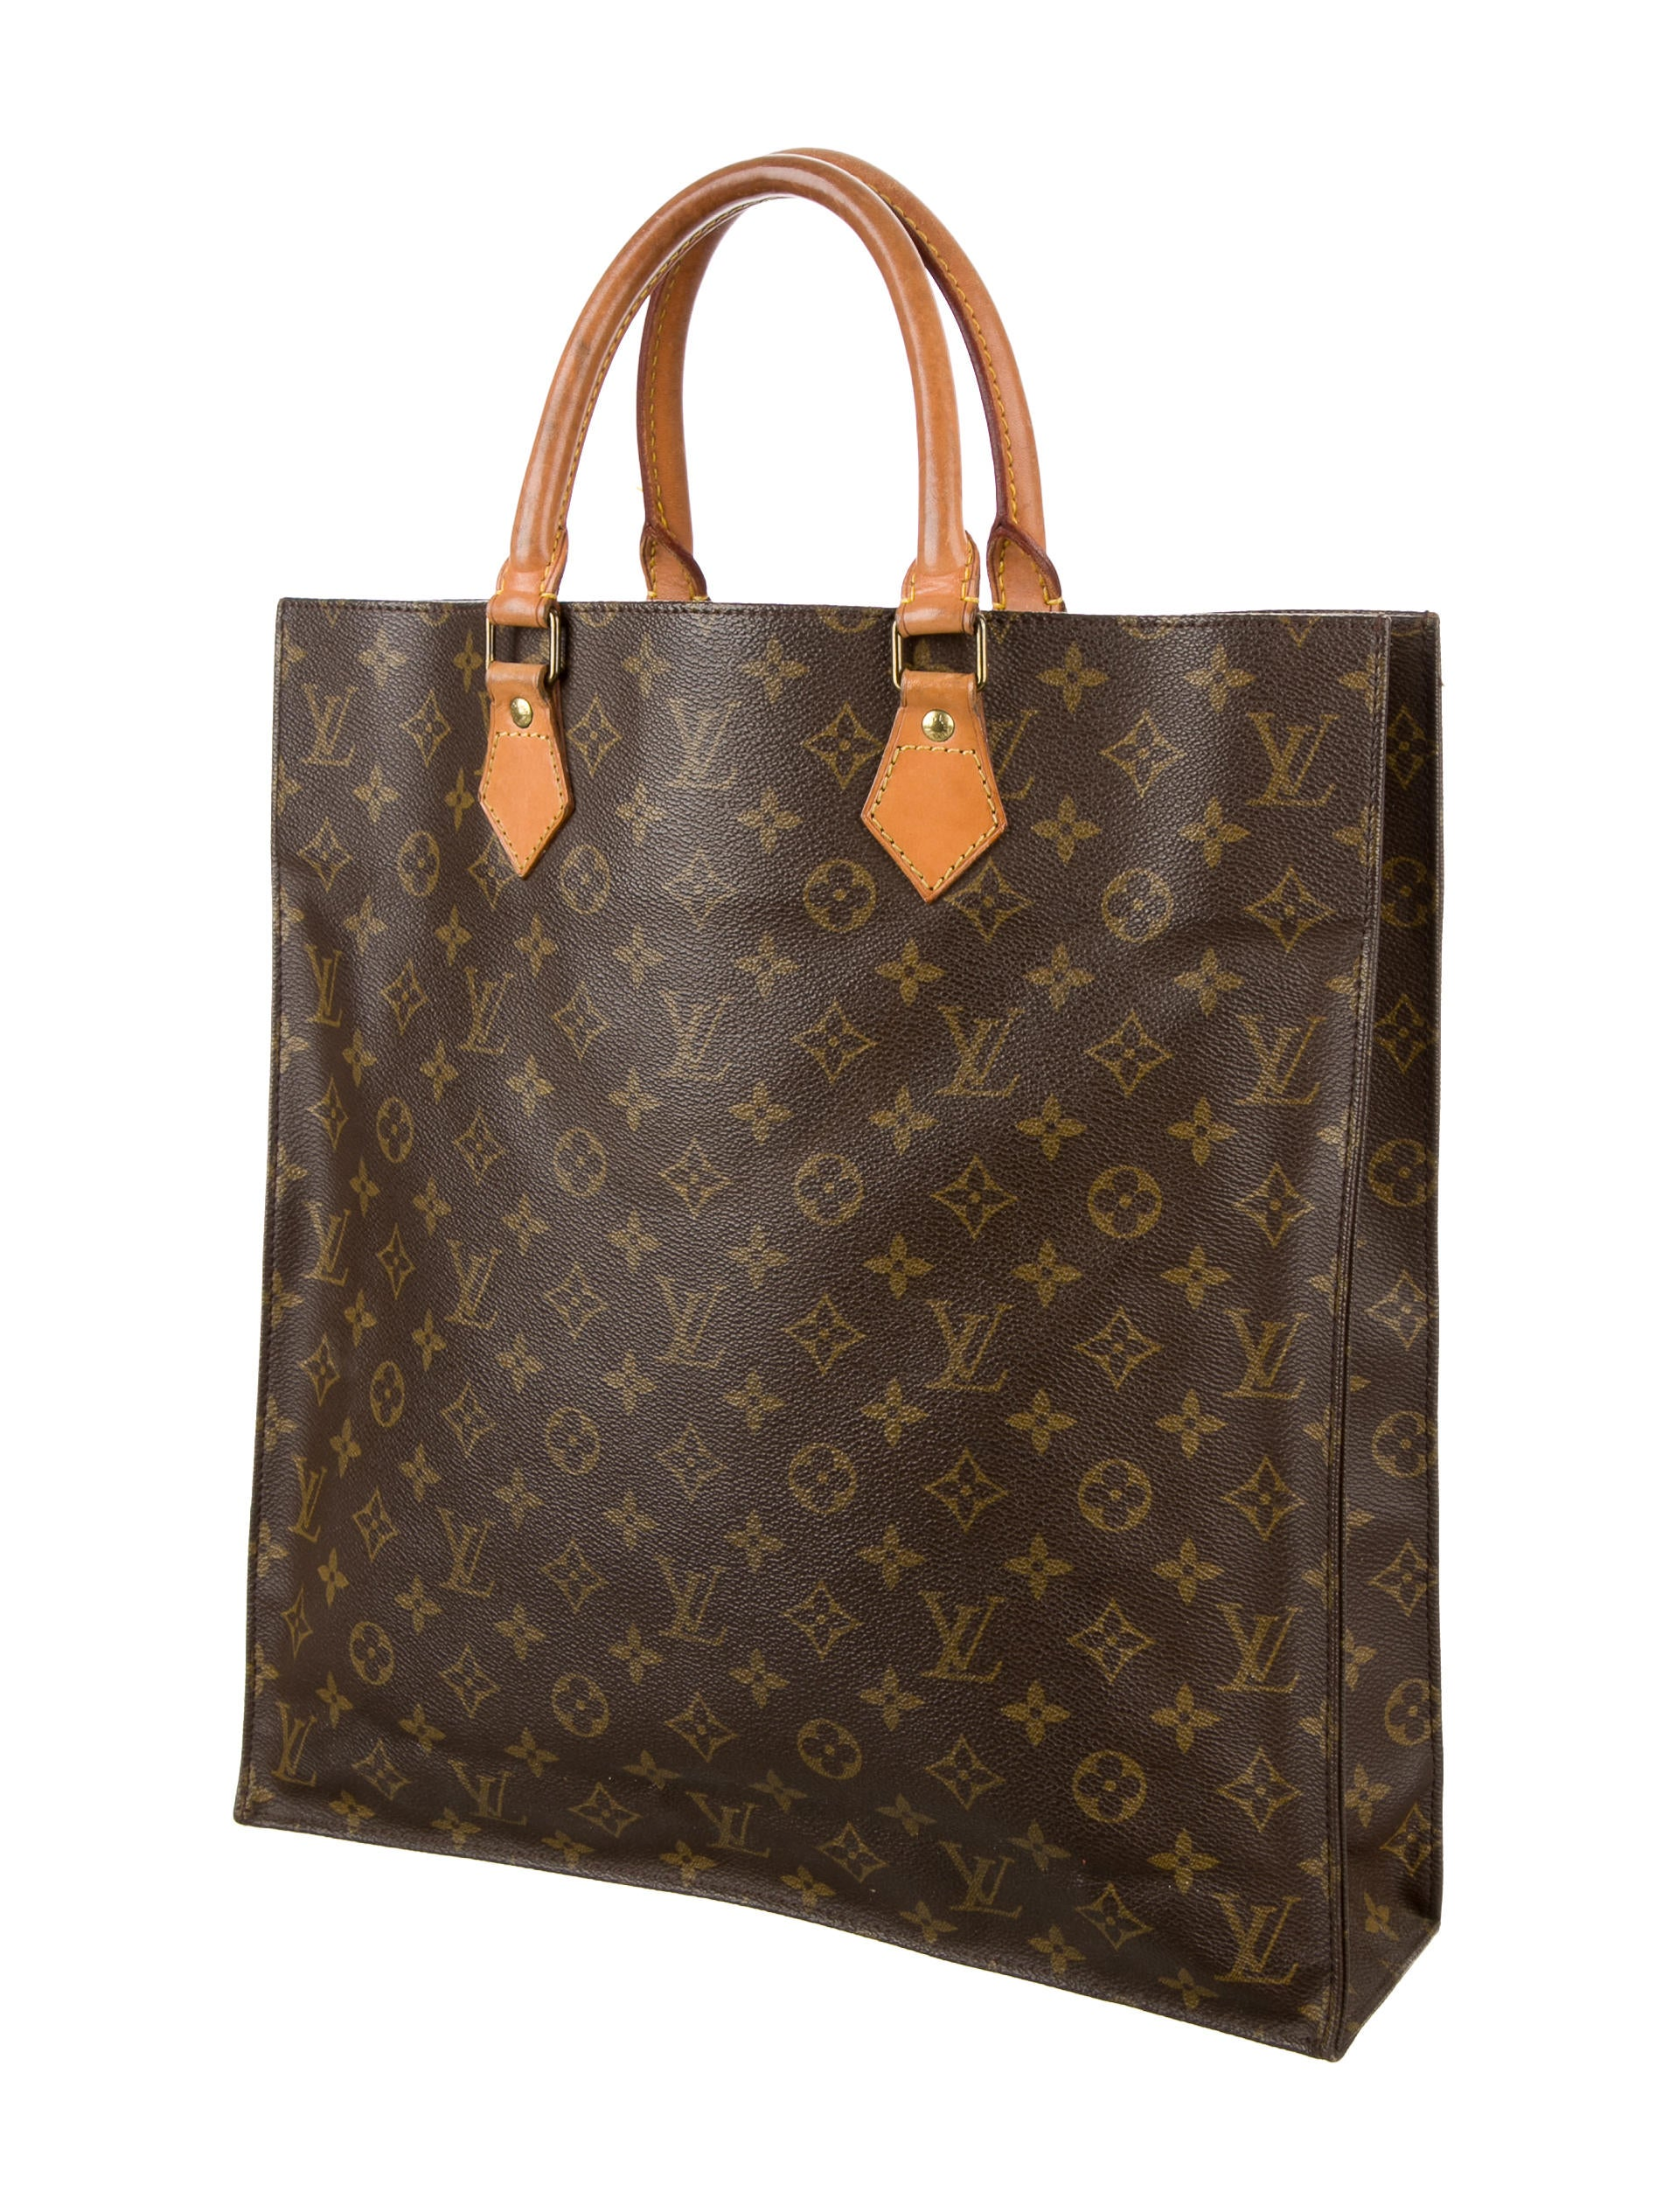 Louis vuitton monogram sac plat handbags lou98576 for Louis vuitton monogram miroir sac plat